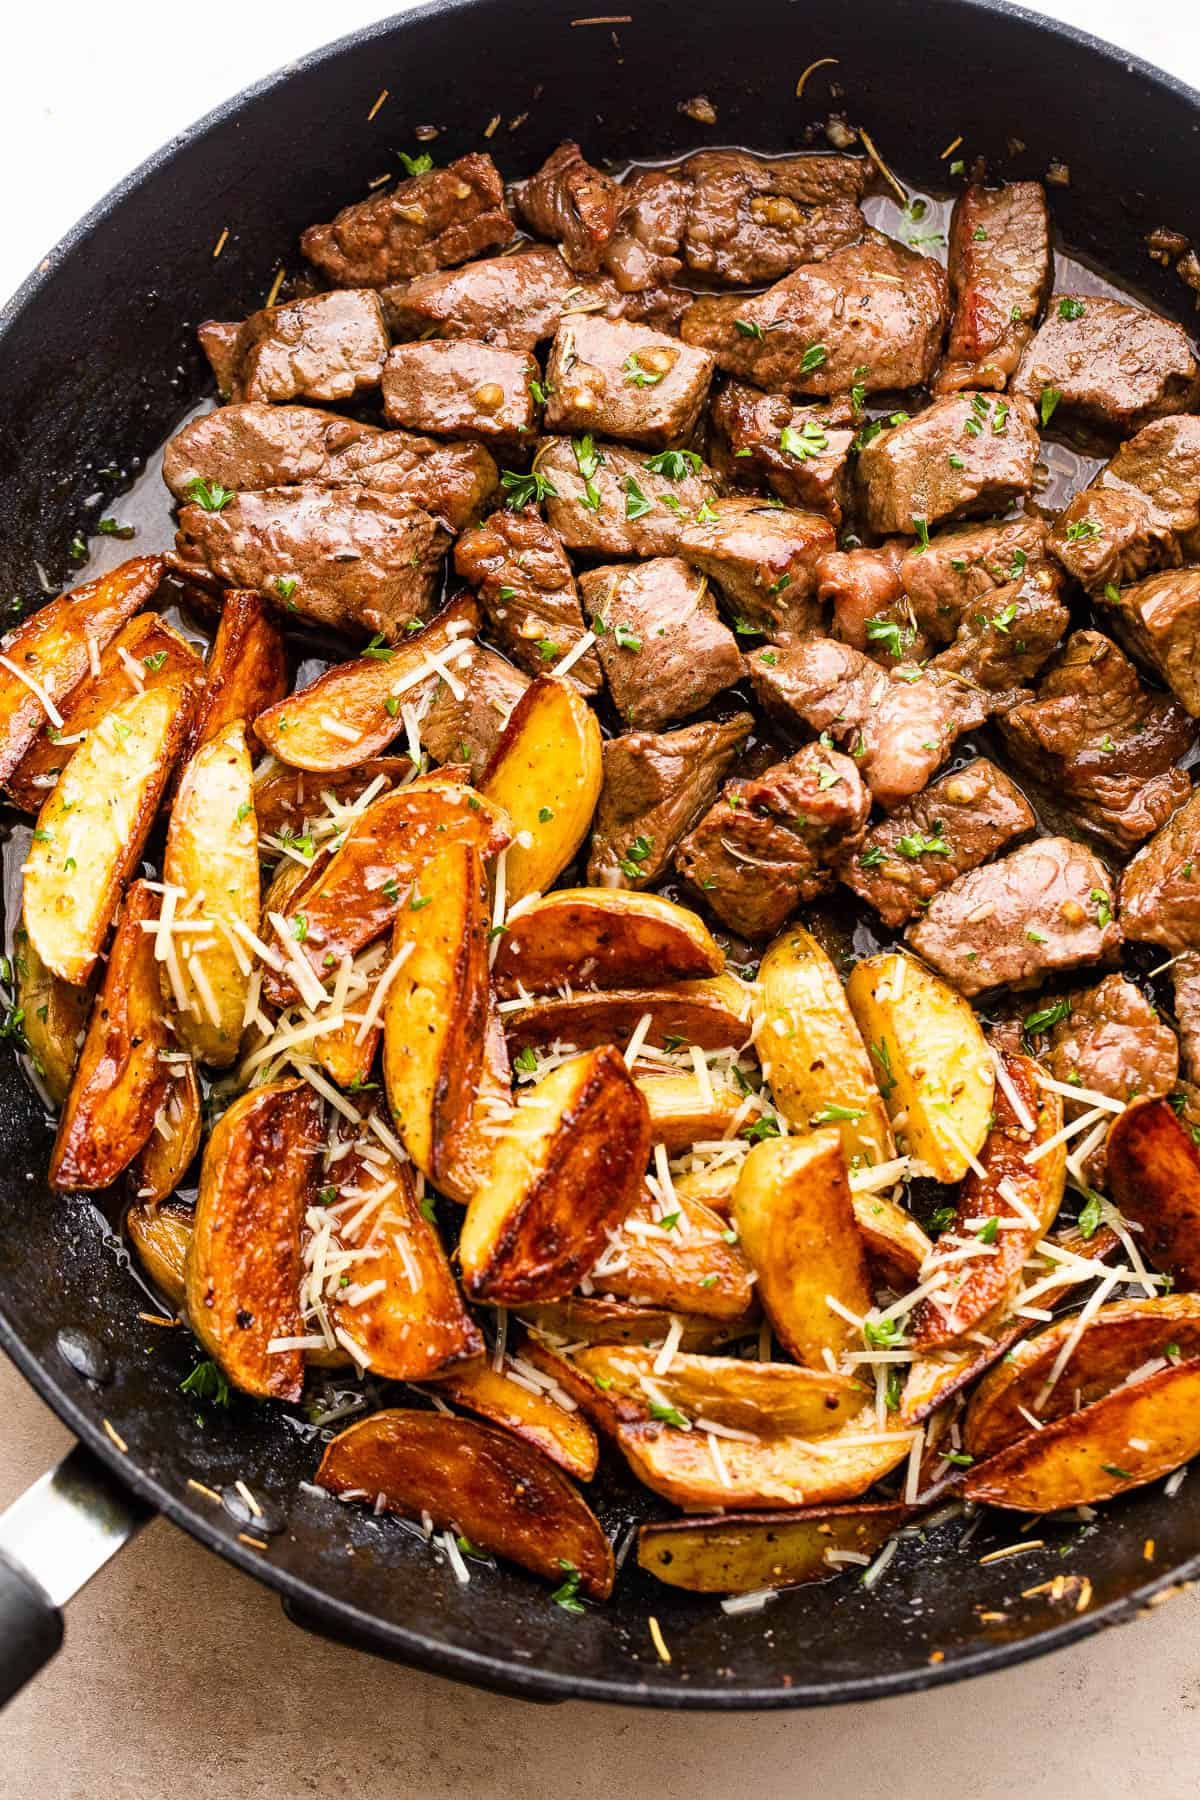 cubed steak and quartered potatoes cooking in a skillet